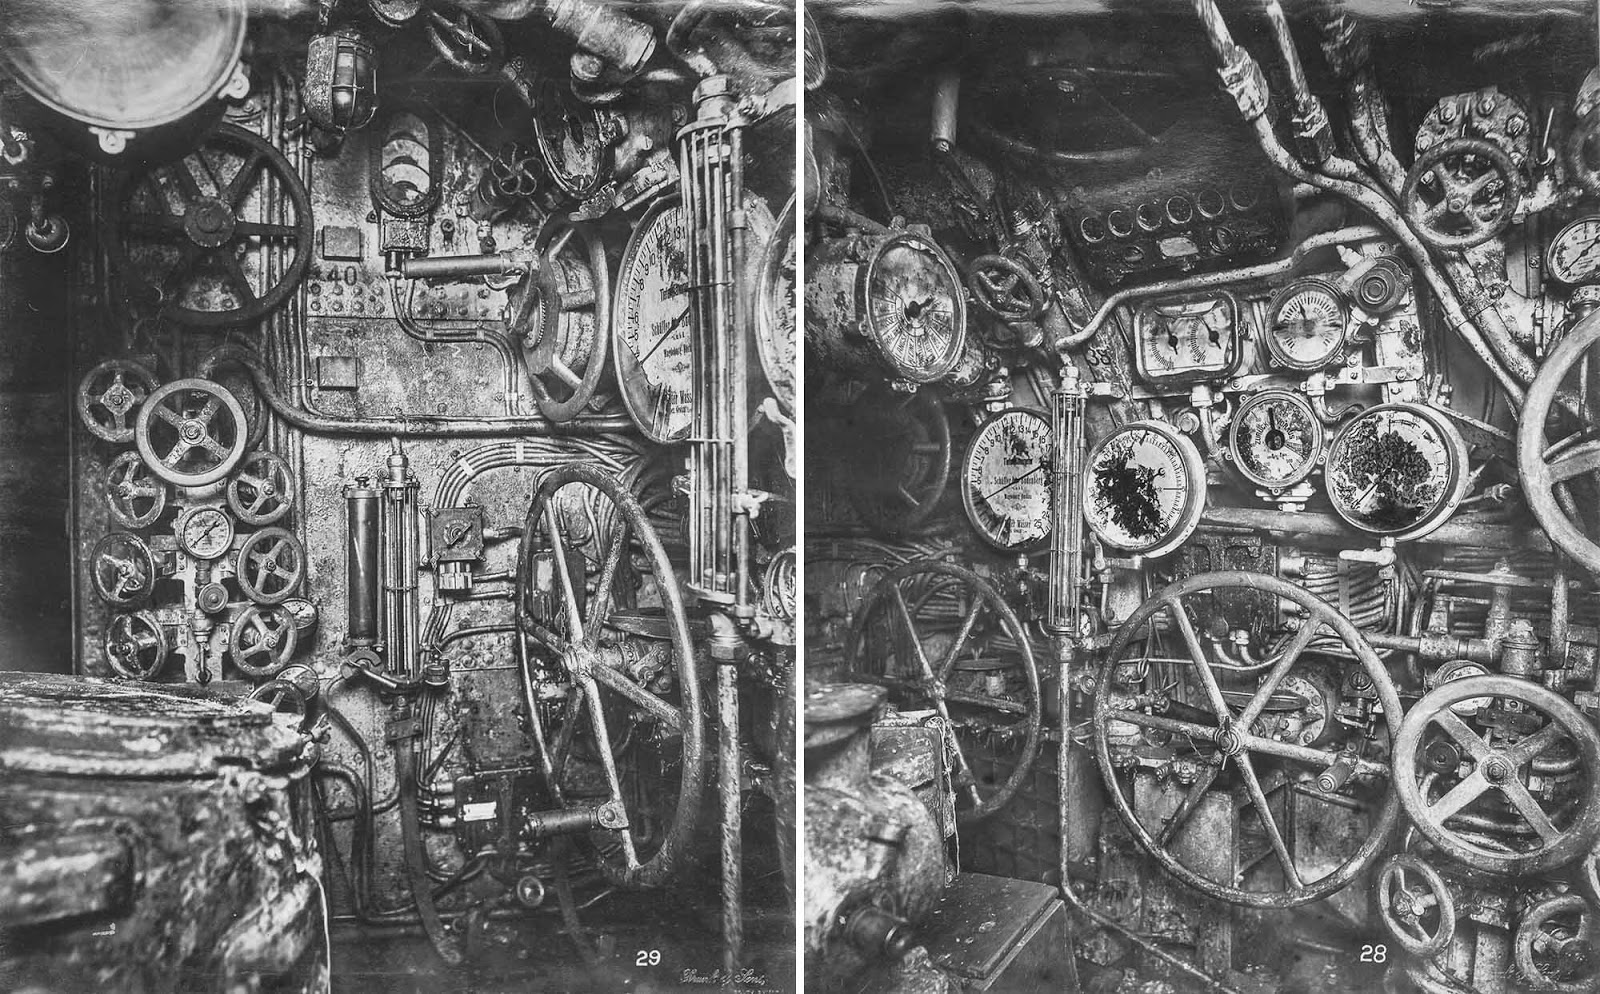 (Left) Control room looking forward. Hydroplane gear, depth and fuel gauges are visible, (Right) Control room looking forward. The depth gauge, engine telegraphs, wheels for flooding and blowing, and hydroplane controls are visible.